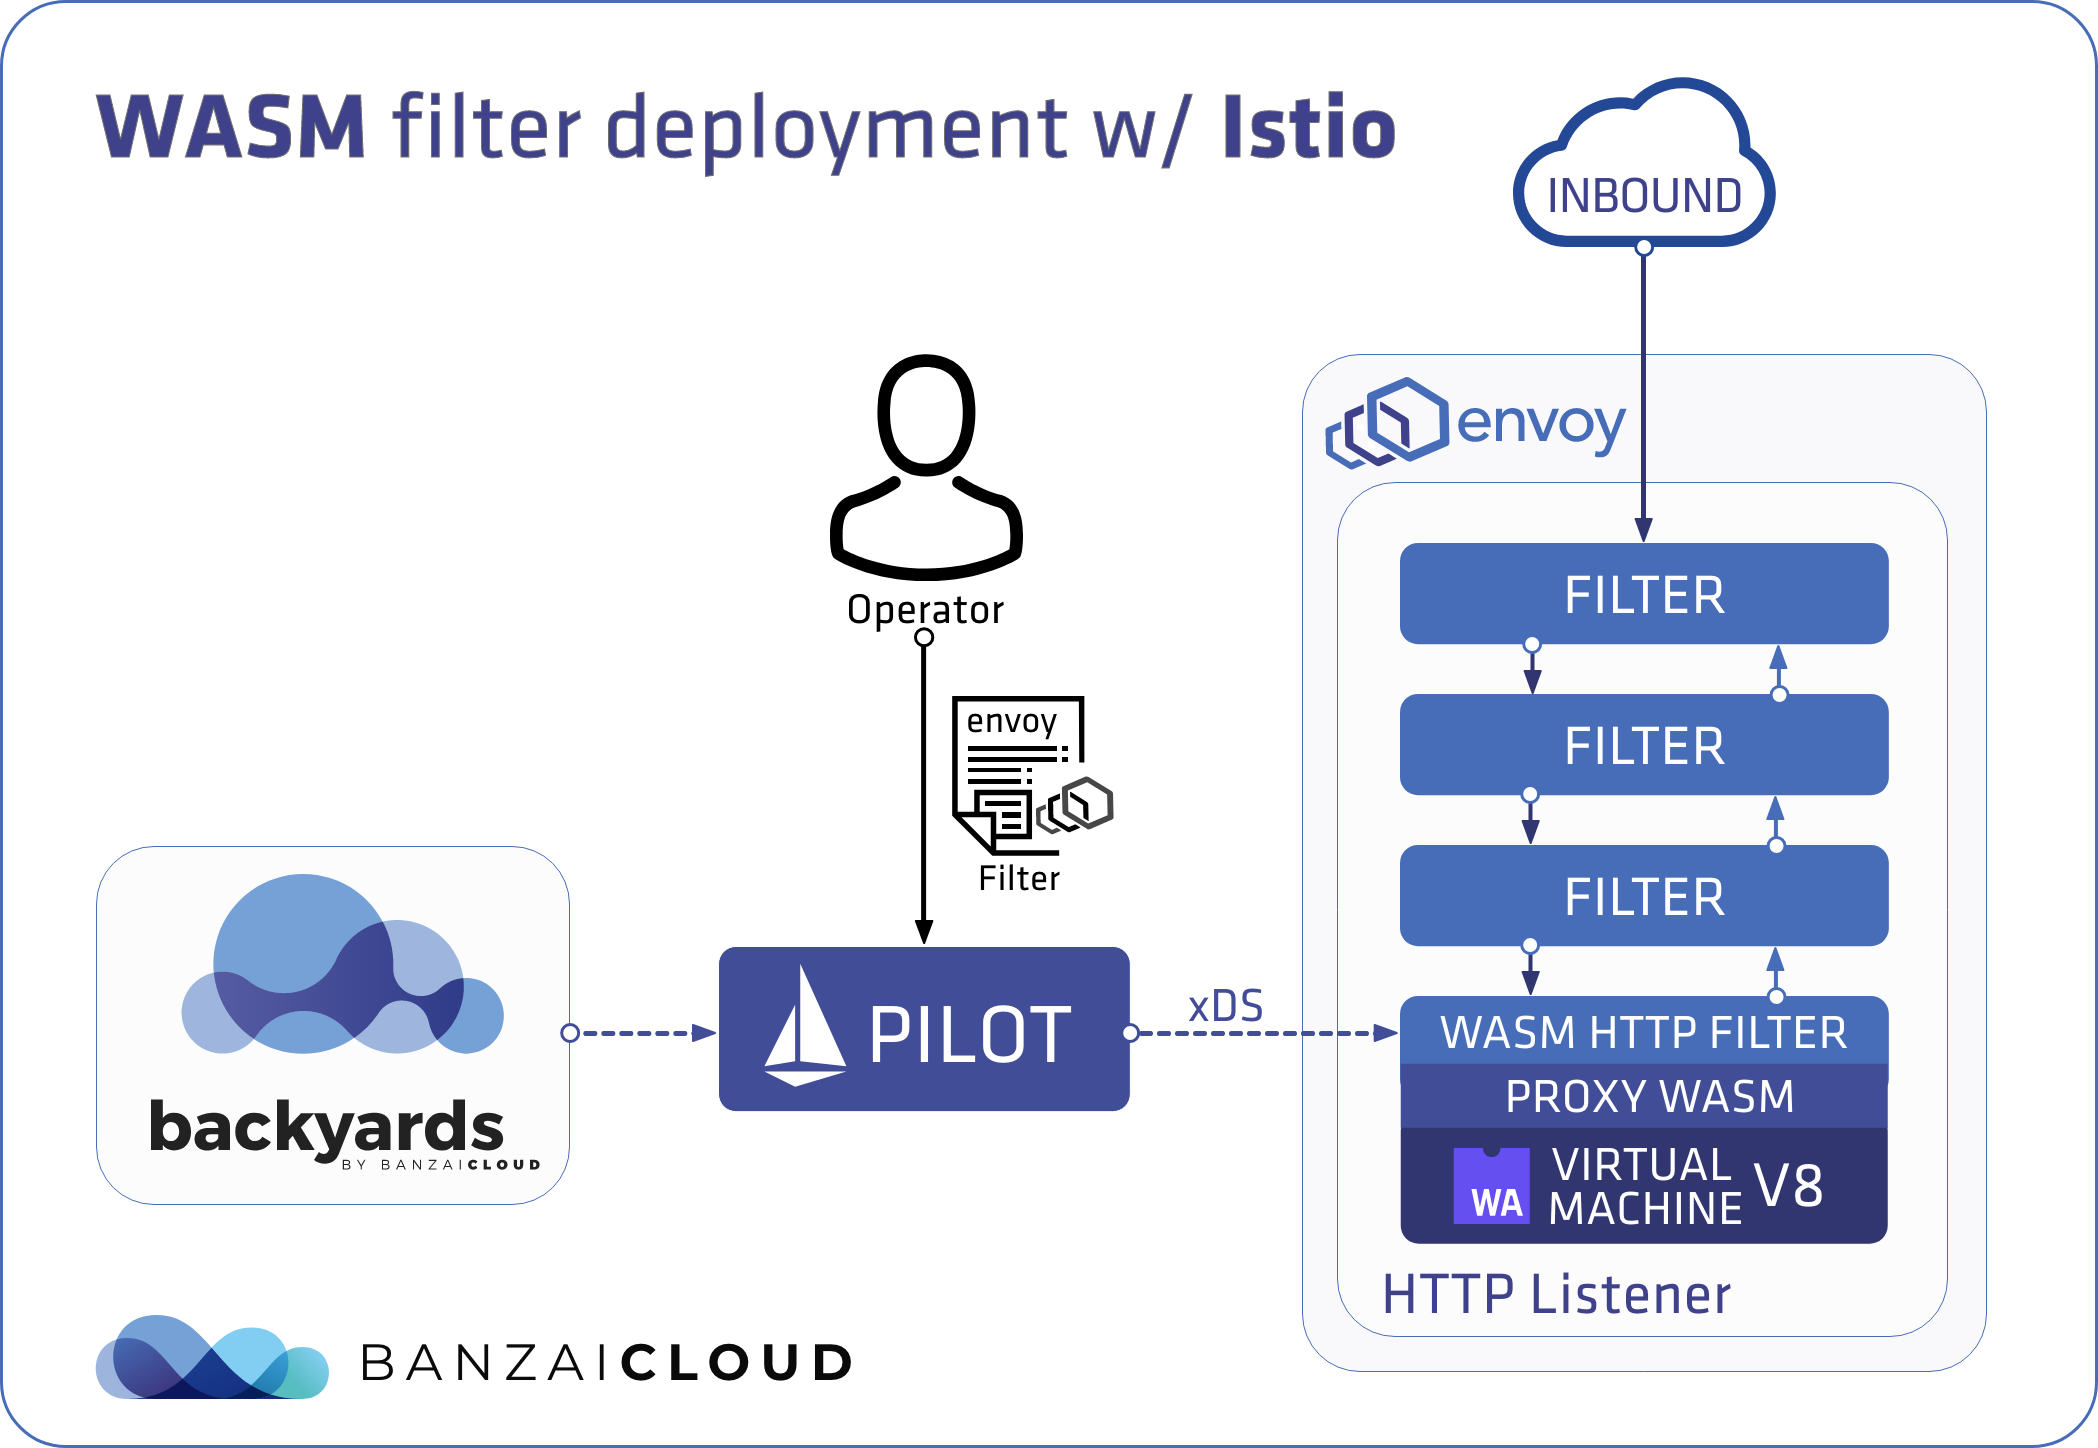 WASM filter deployment with Istio